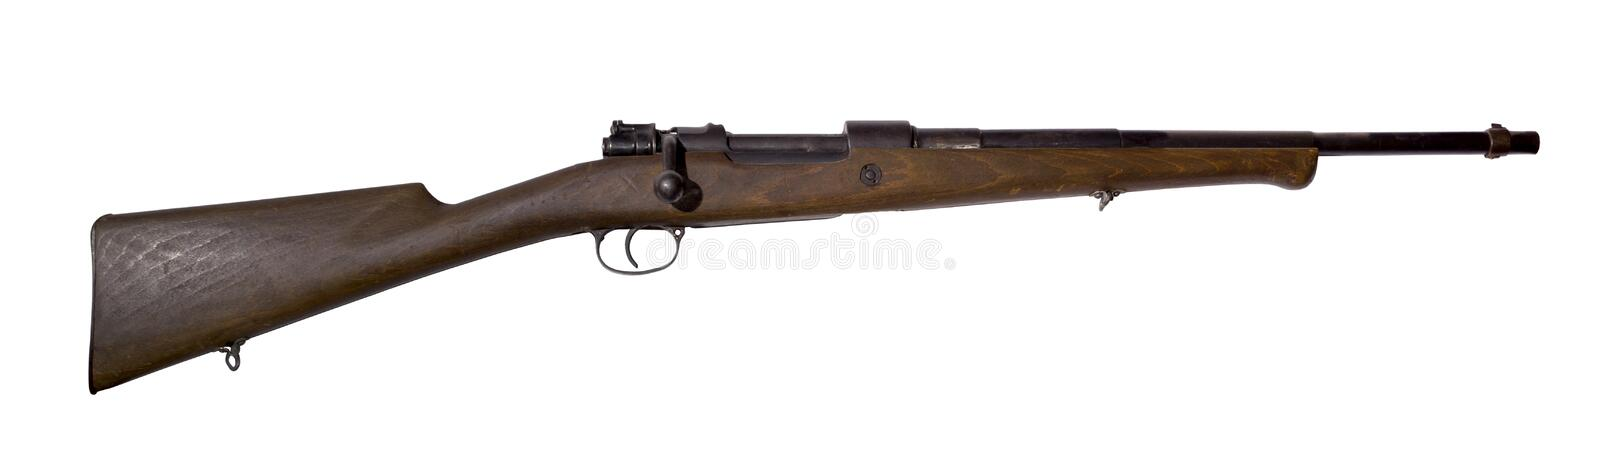 Vintage hunting rifle, converted from an army carbine, on a white background stock photo